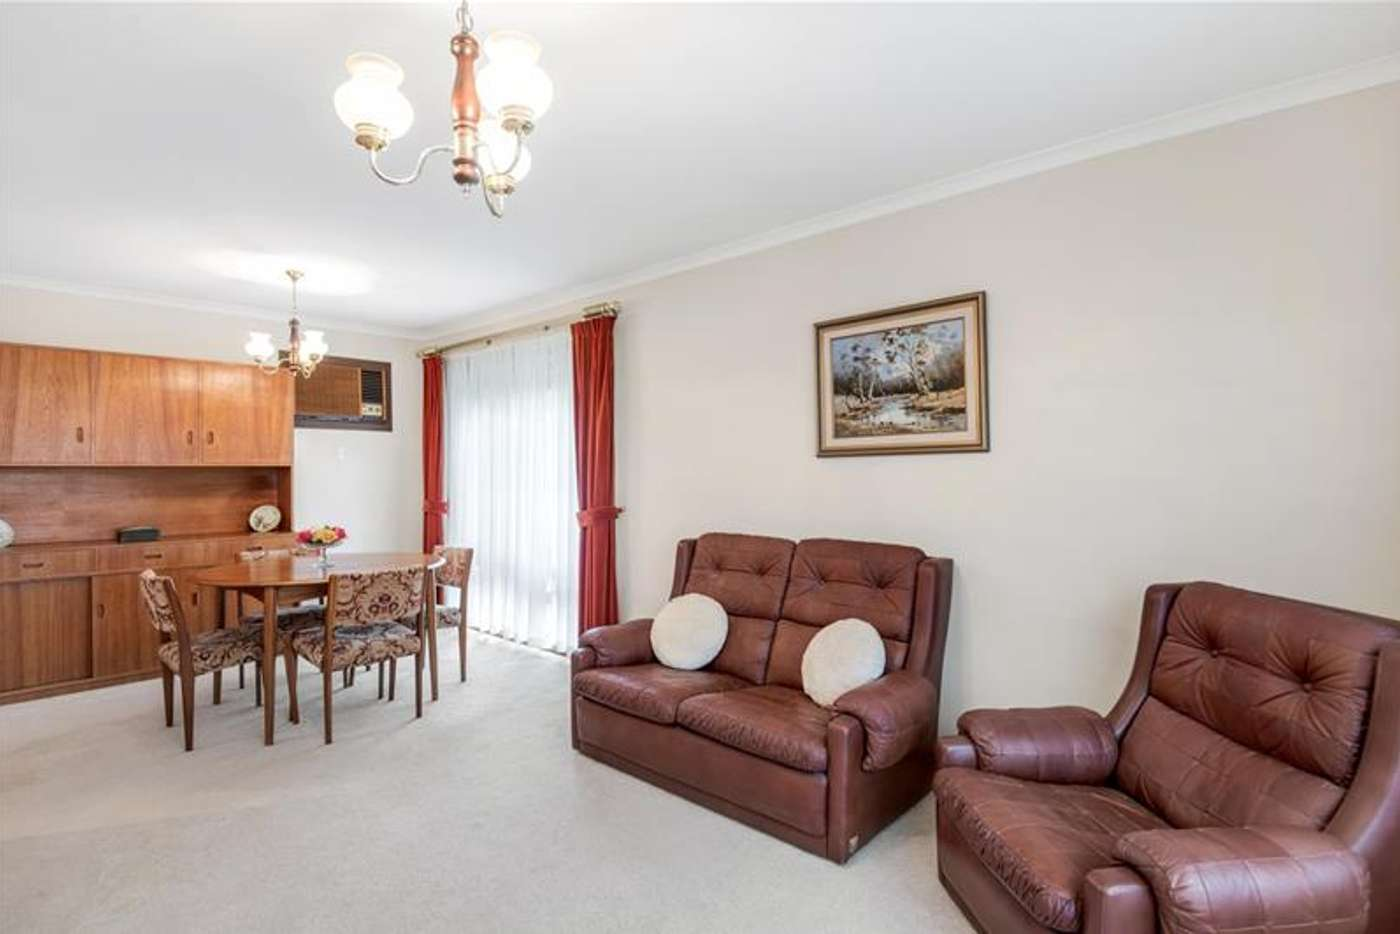 Fifth view of Homely house listing, 17 Sarnia Farm Road, St Agnes SA 5097